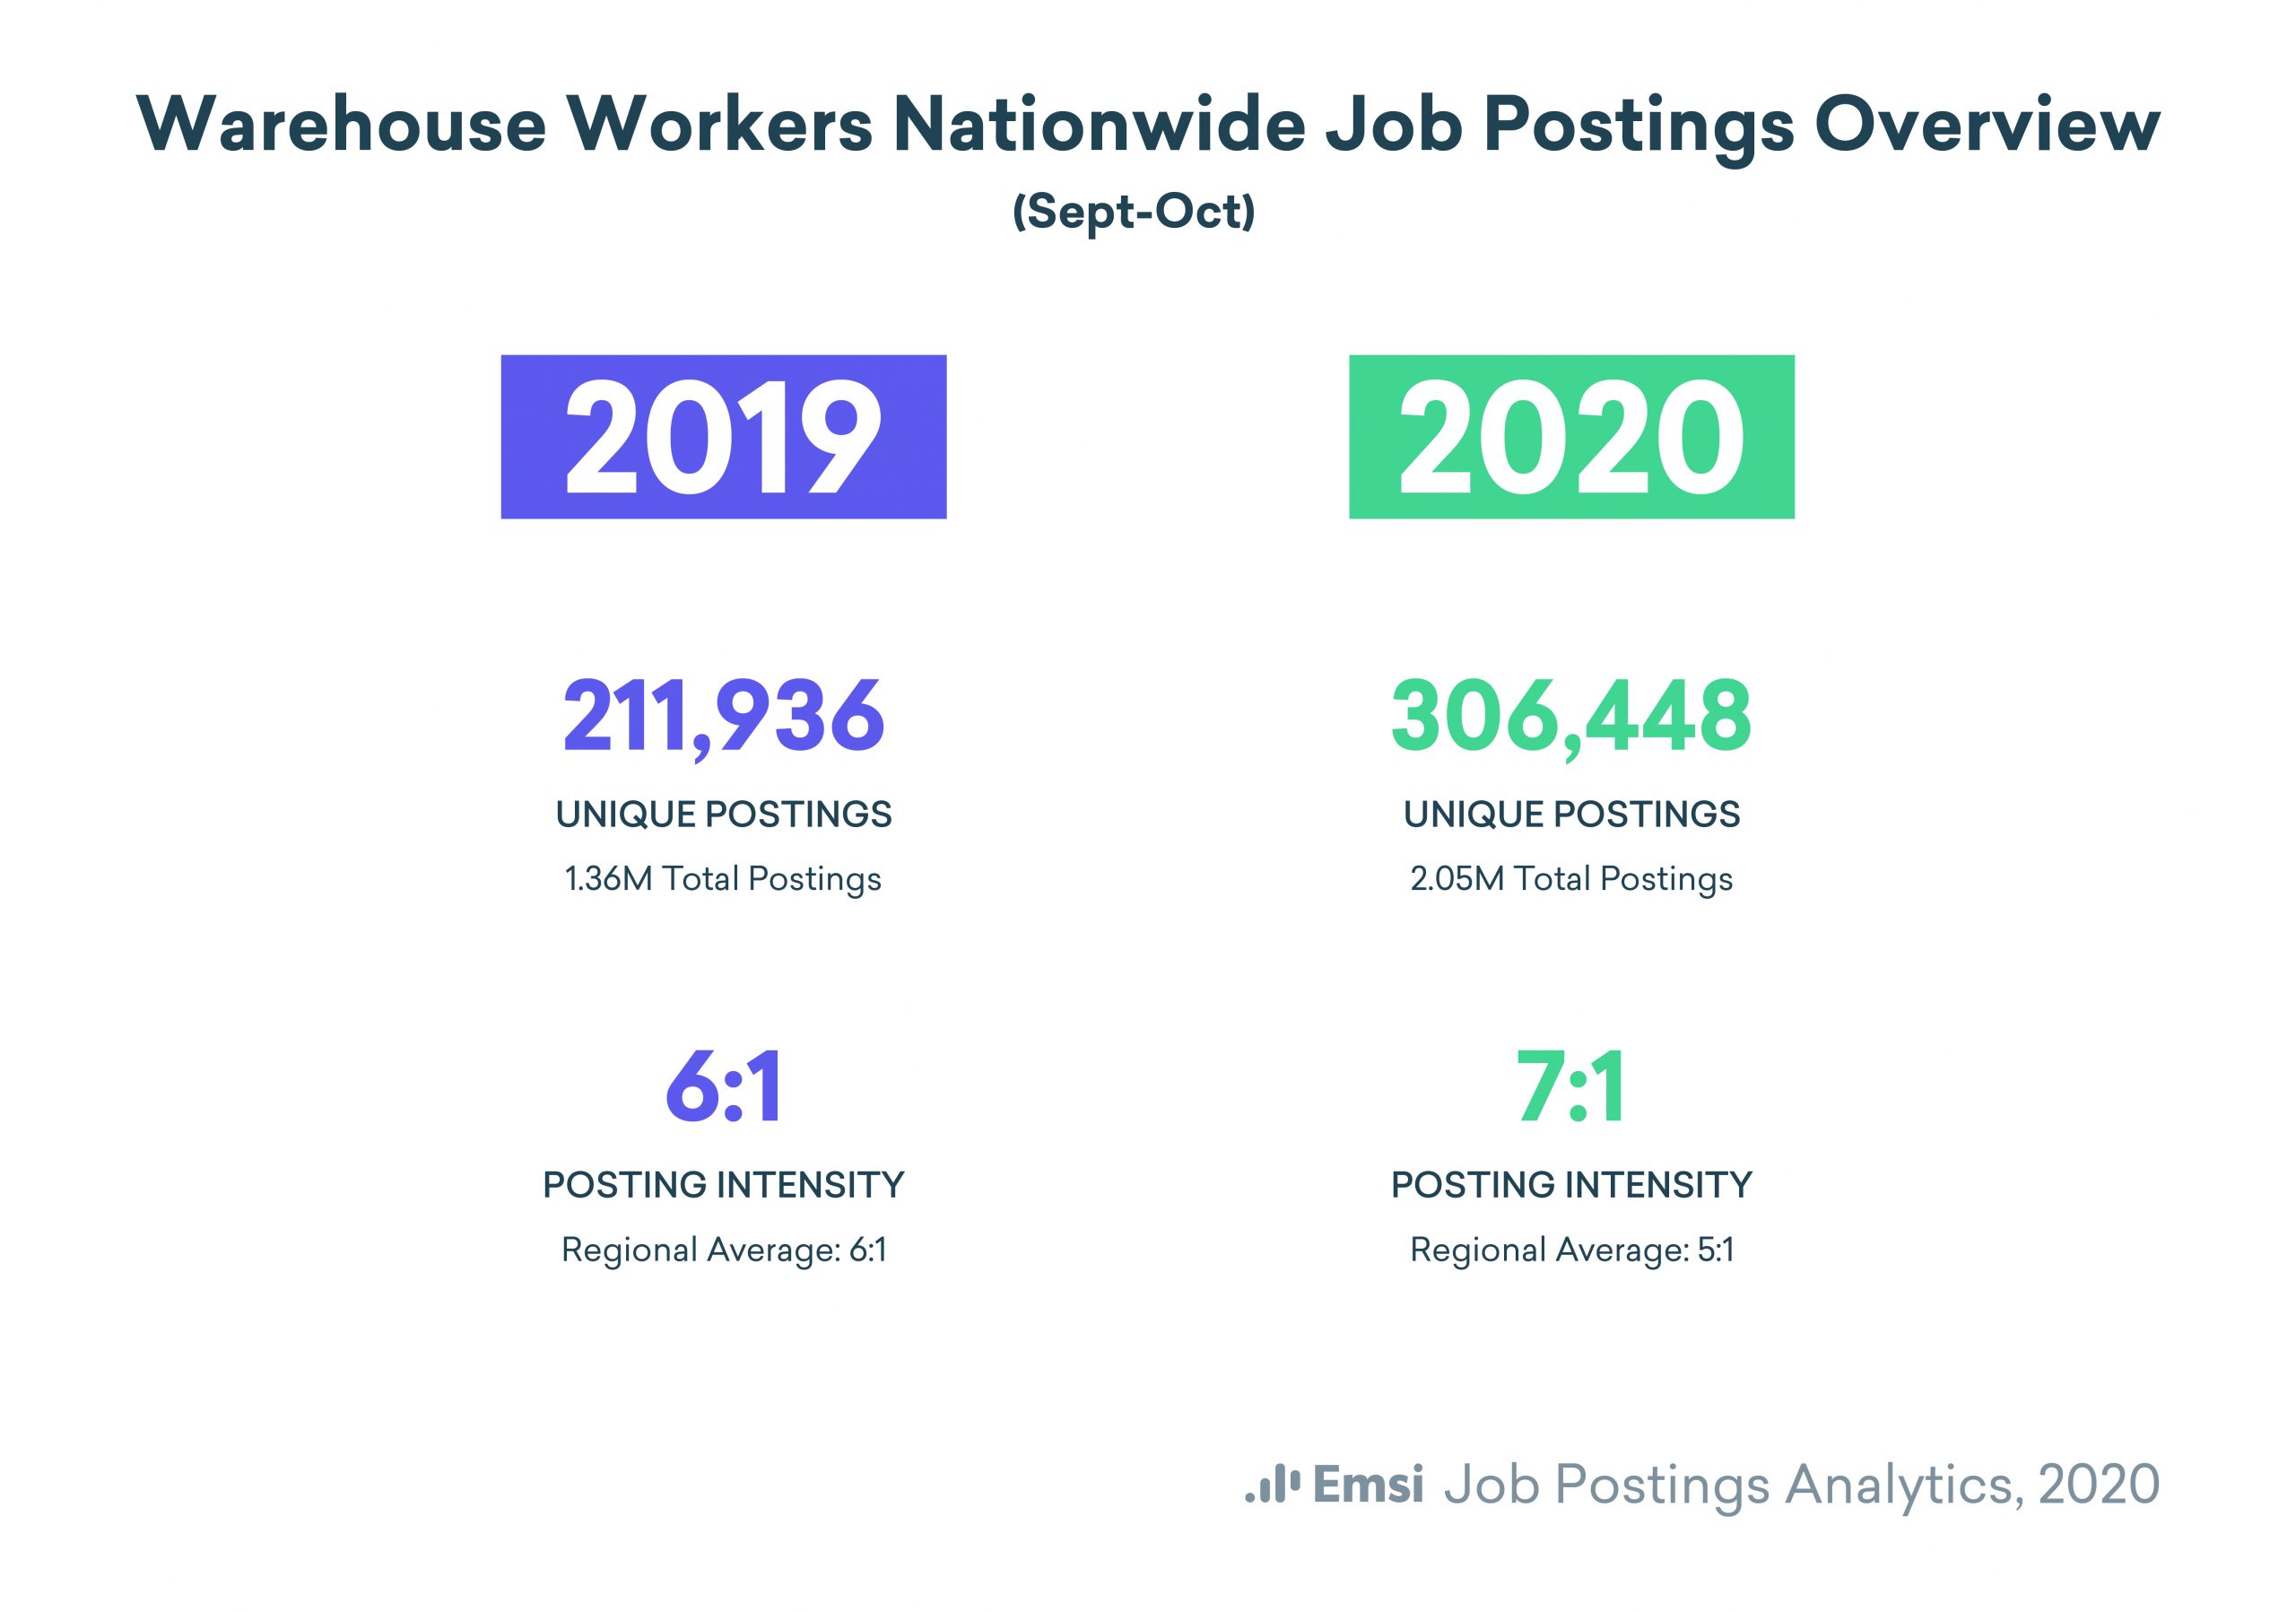 Warehouse Worker Job Posting Comparison 2019 to 2020